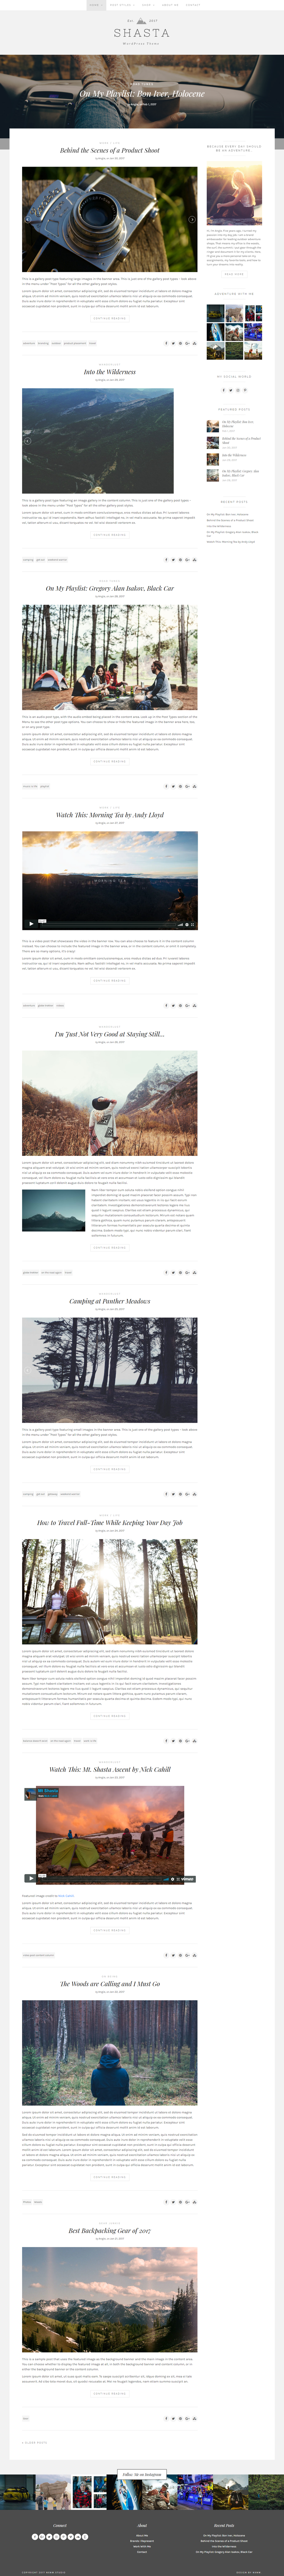 Shasta - Best Premium WordPress Blog Theme